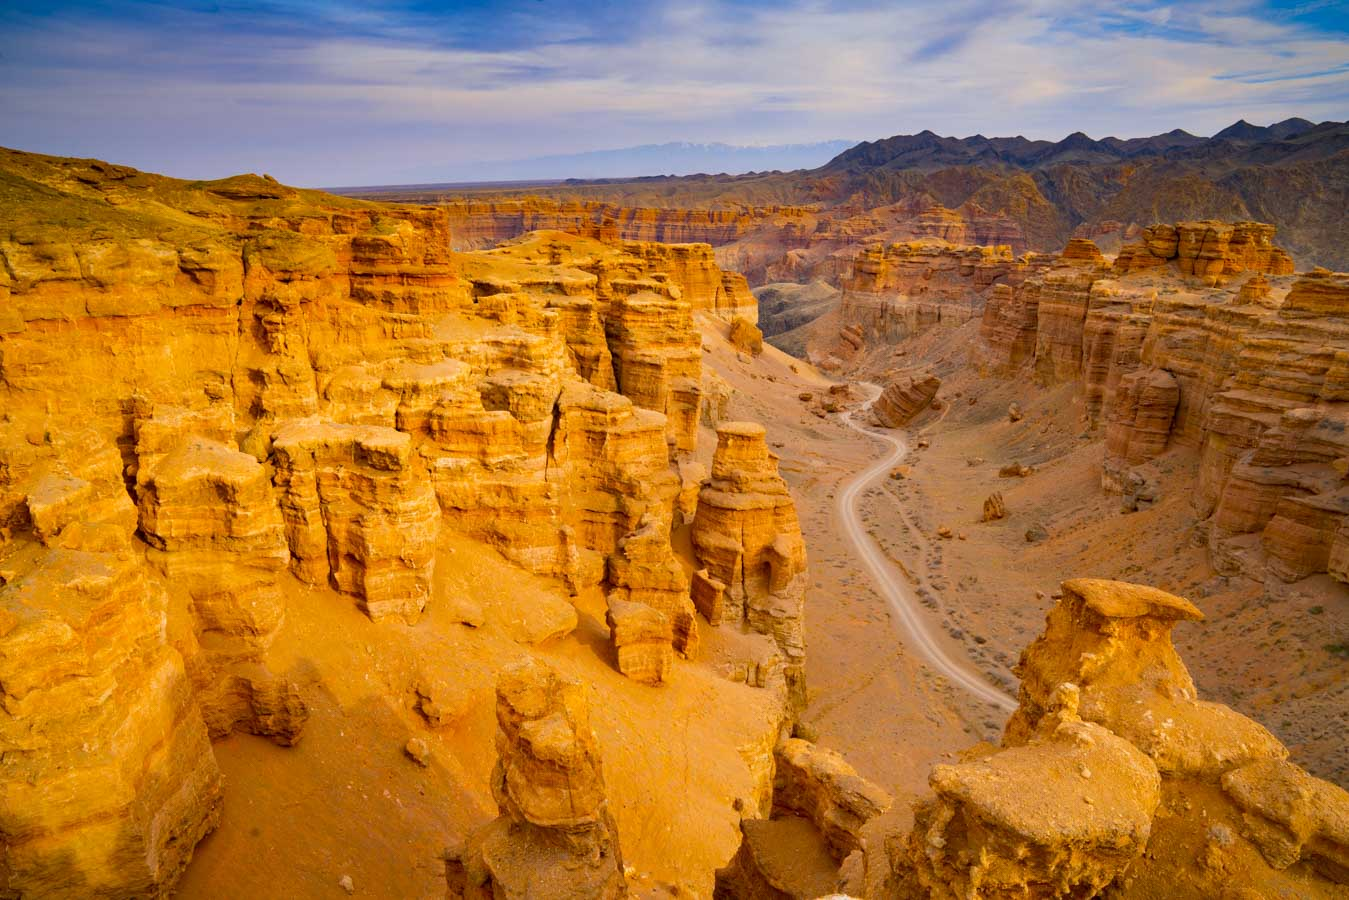 Charyn Canyon, Kazakhstan, Photographed by Tom Till